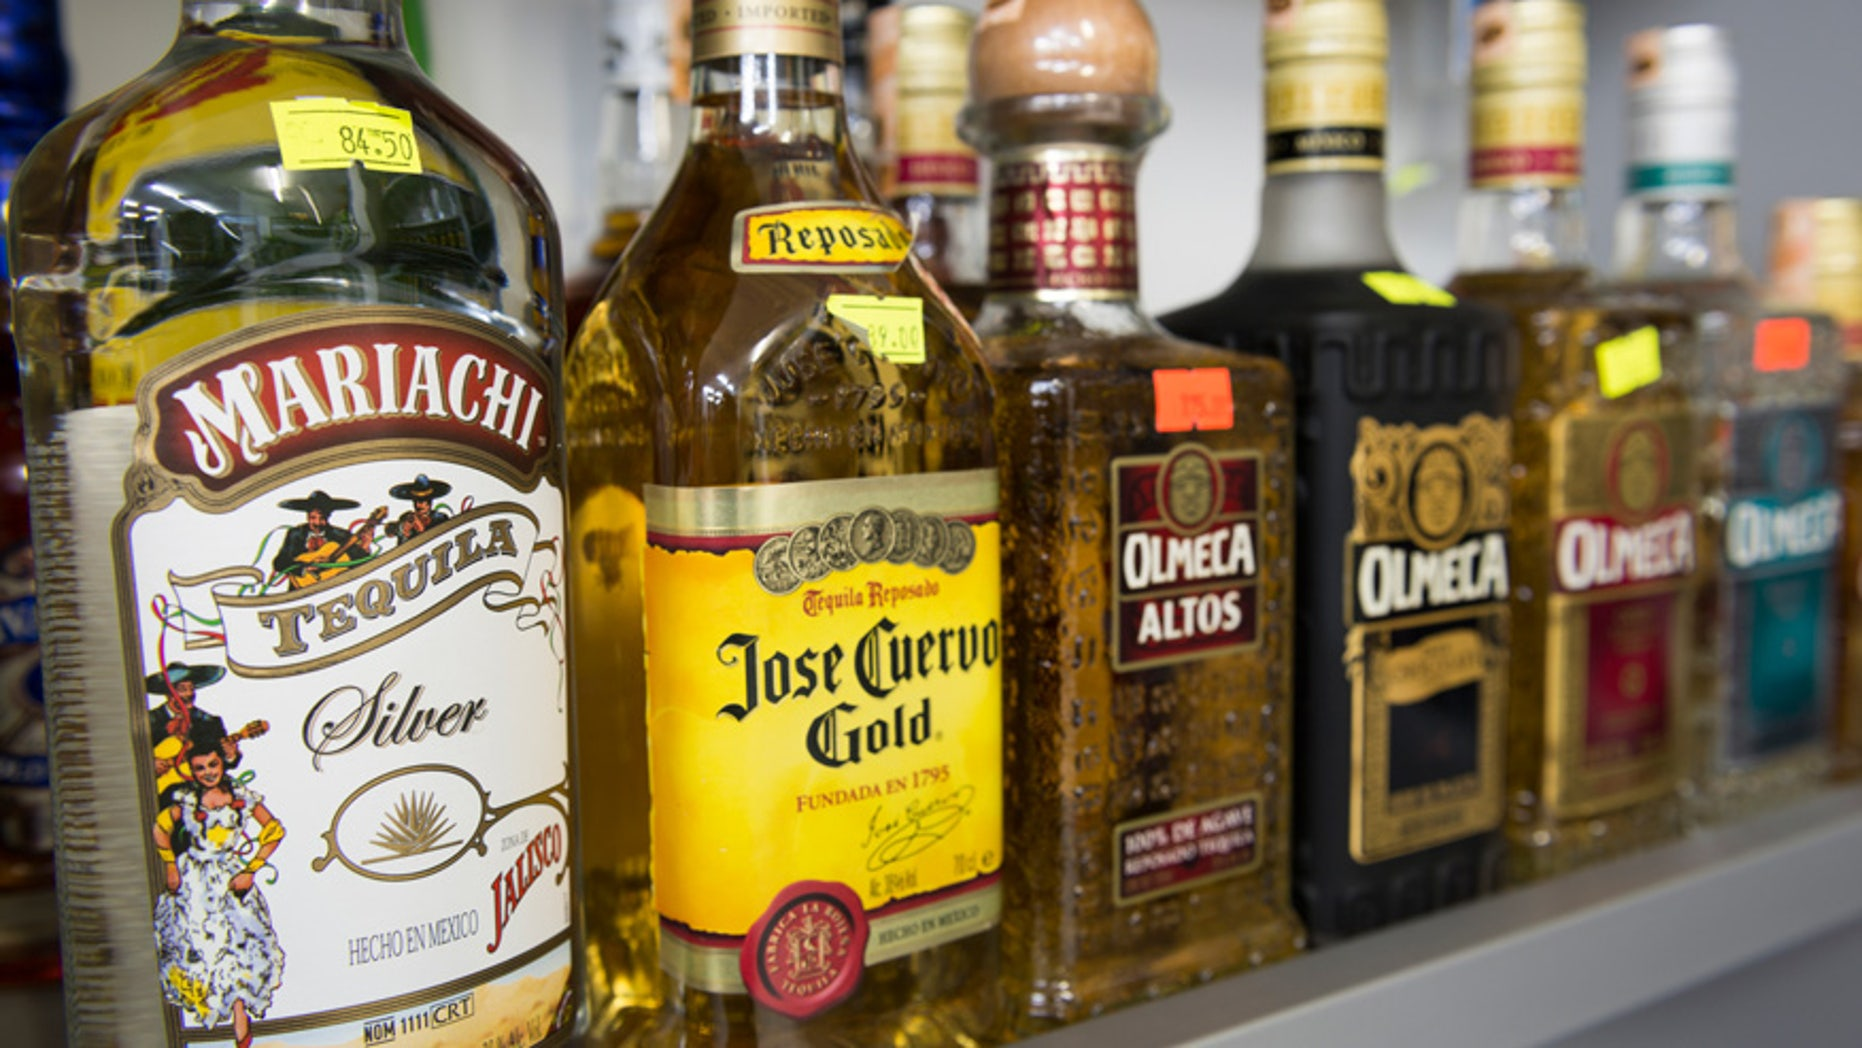 We've been drinking tequila all wrong!